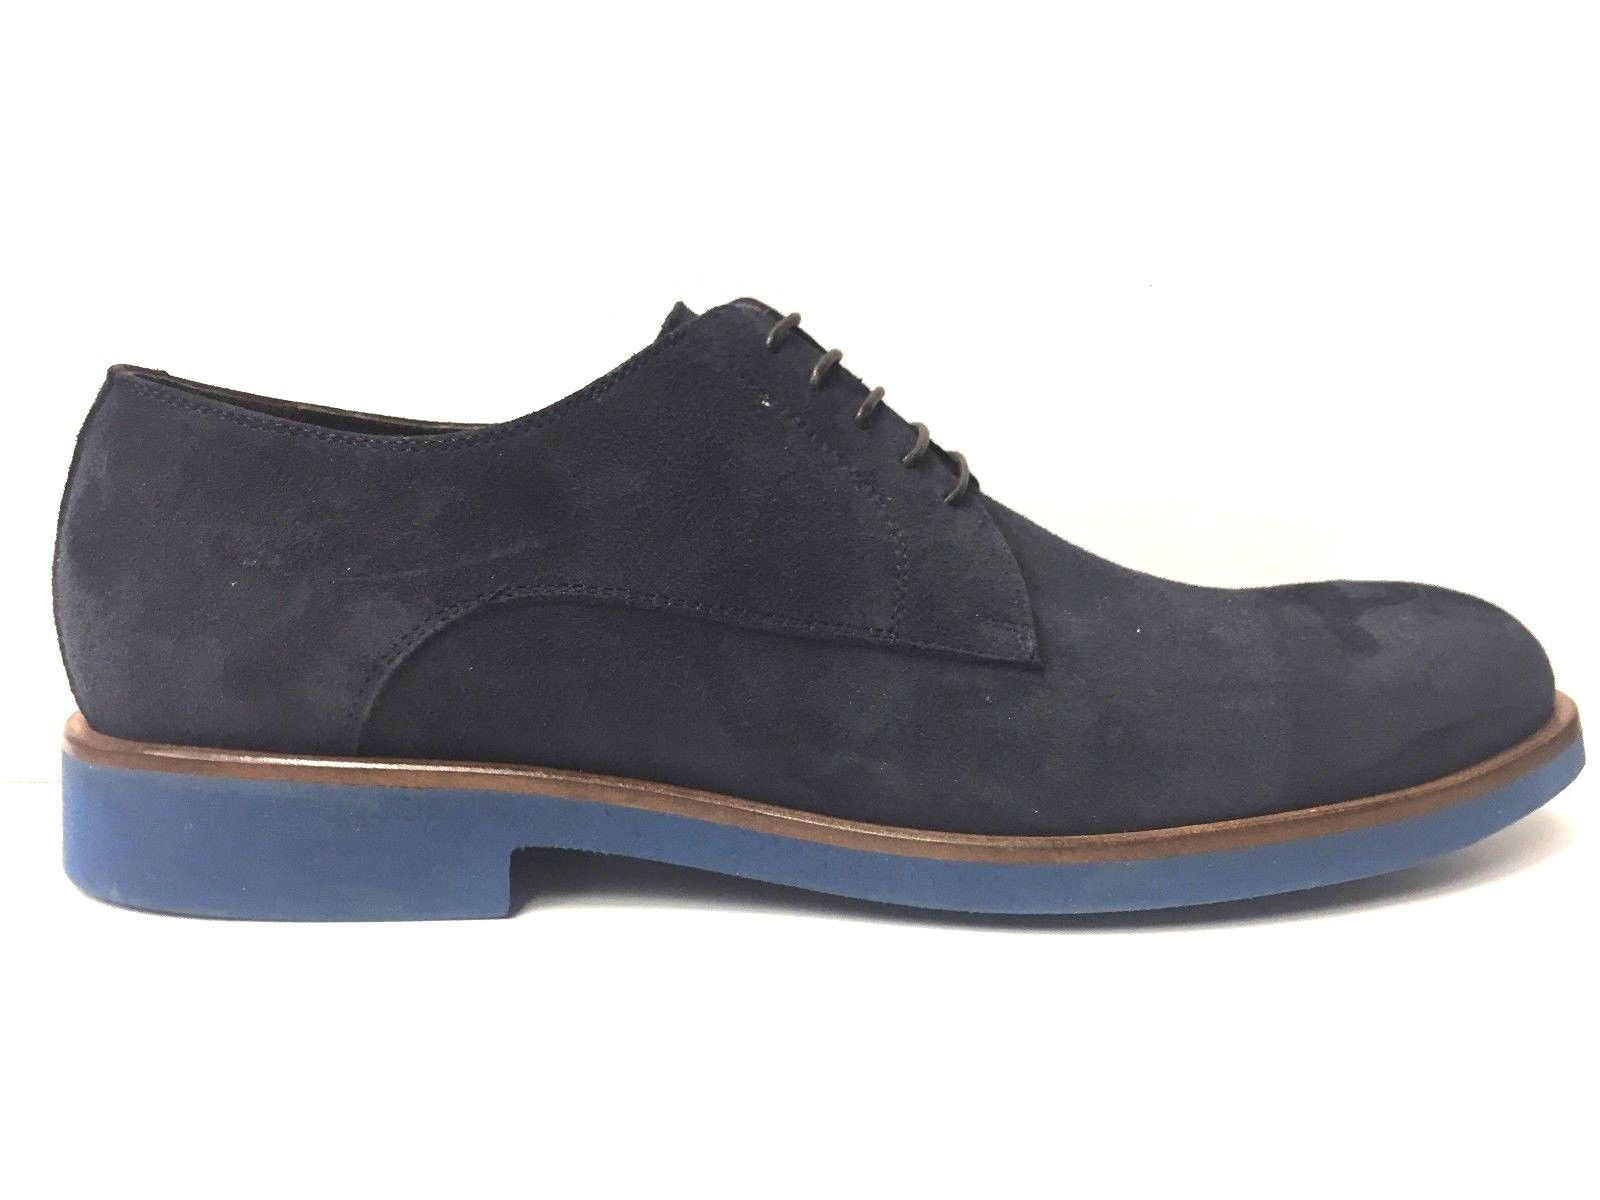 SCARPE CASUAL UOMO BALDININI TREND ORIGINALE BLU PELLE SHOES P/E NEW